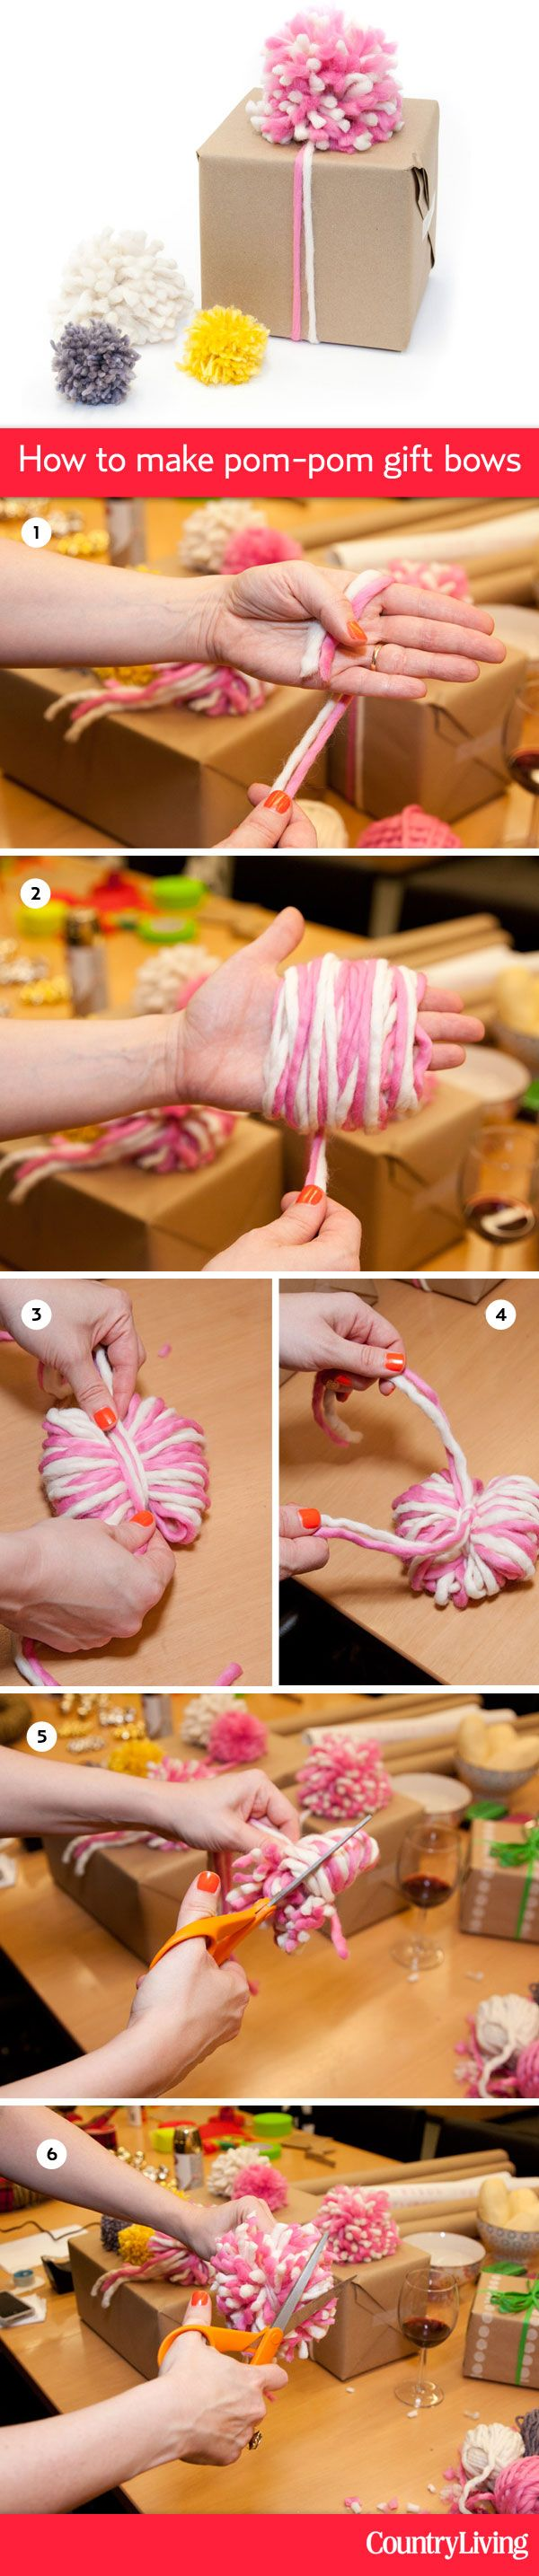 @Brett Johnson Johnson Bara shows us how to make fun pom-pom gift bows out of yarn: http://www.countryliving.com/crafts/how-to-make-pom-pom-gift-bows     #pinspirationparty